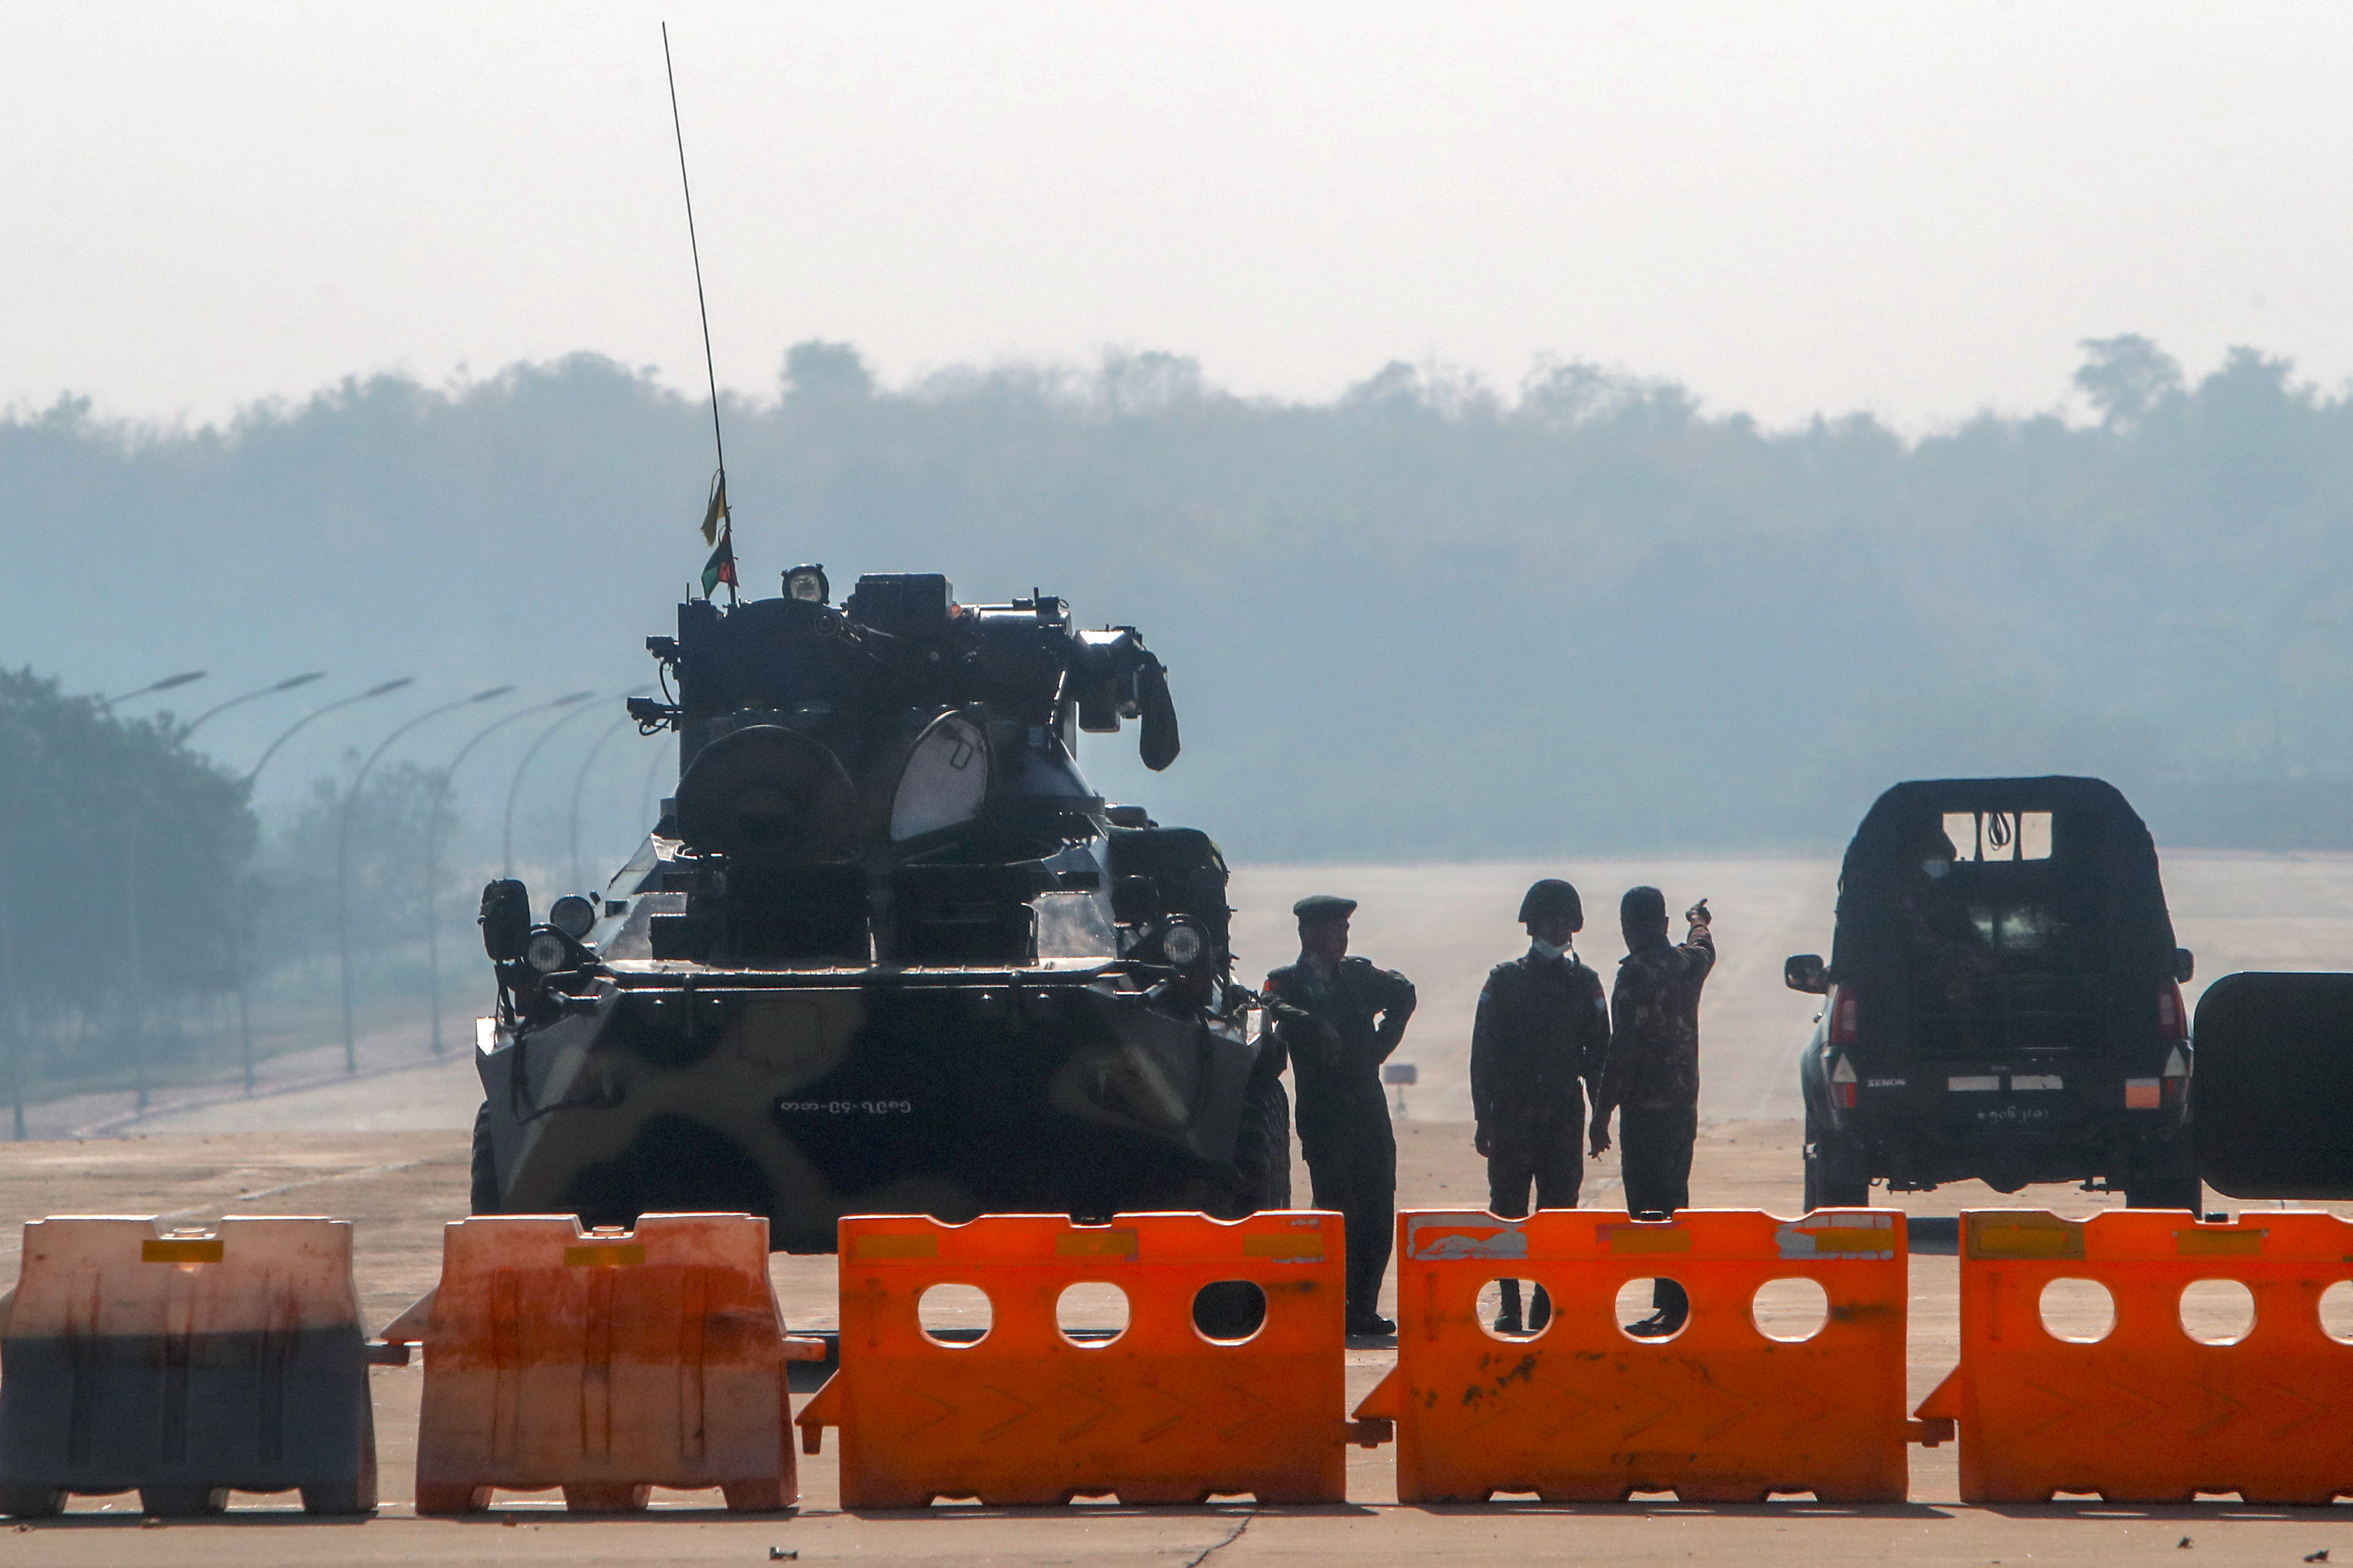 Myanmar's military stand guard at a checkpoint manned with an armored vehicle in a road leading to the parliament building Tuesday, Feb. 2, 2021, in Naypyitaw, Myanmar.